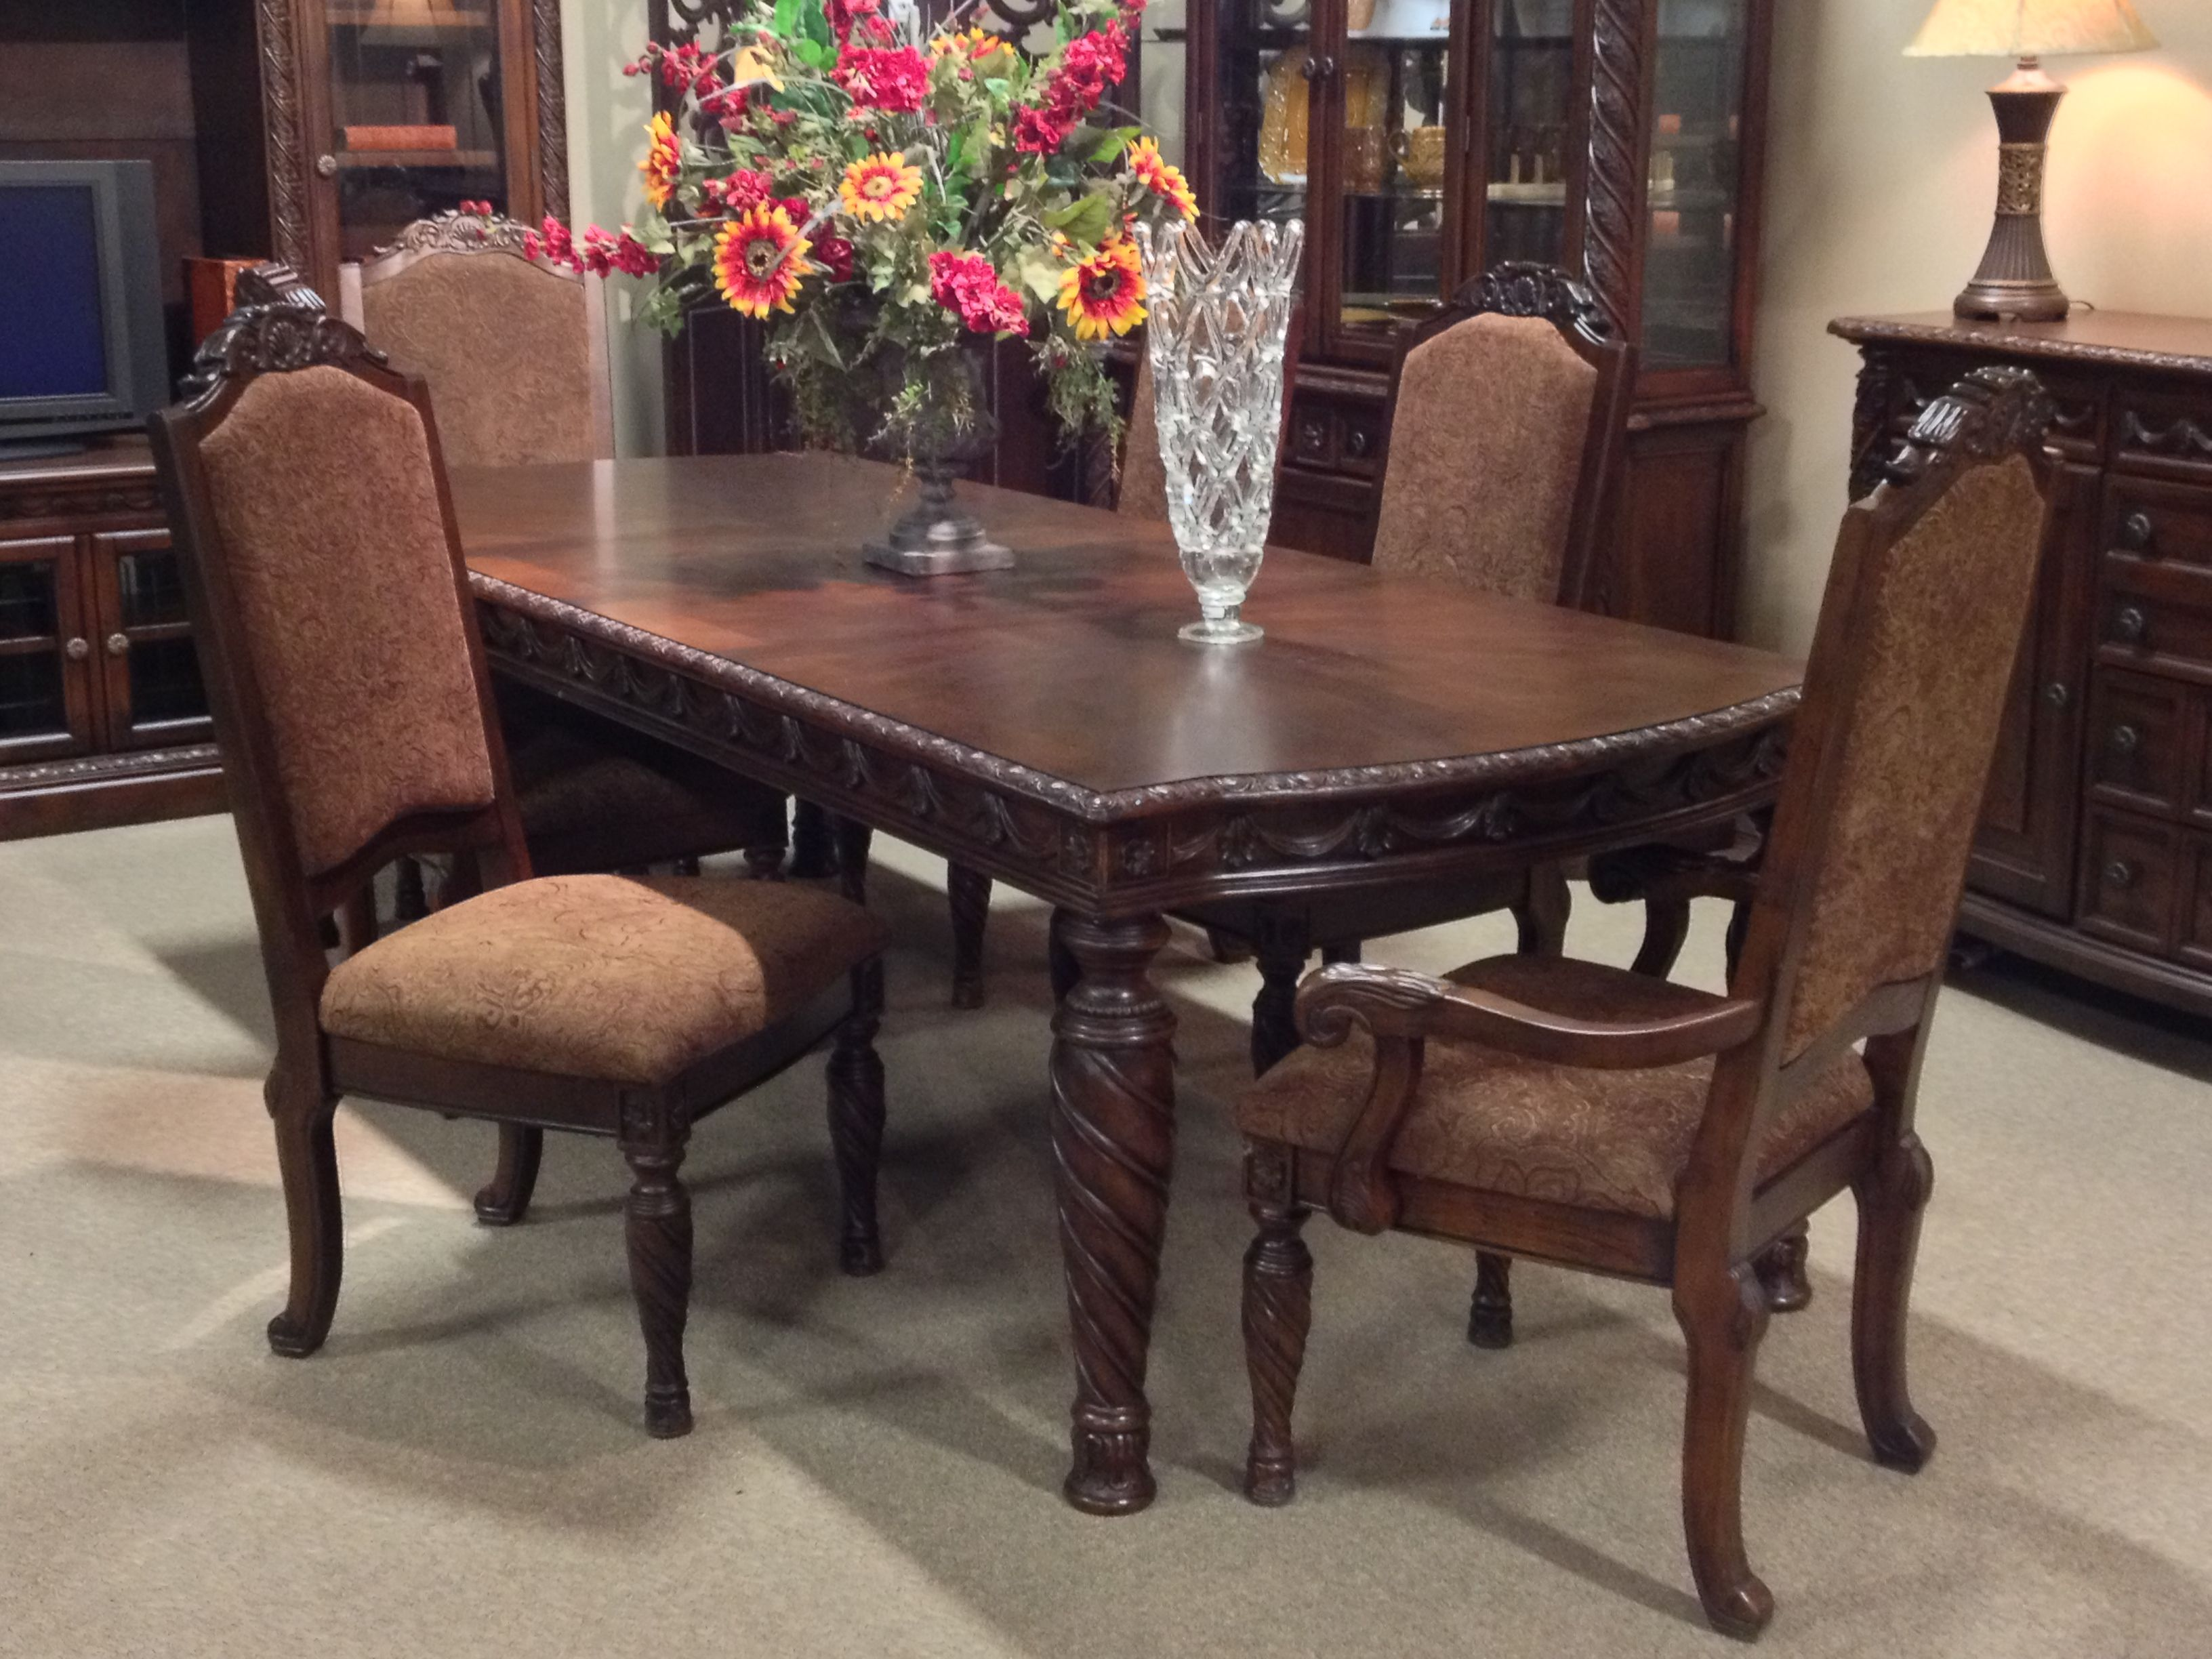 Ashley Furniture Richland Wa Ashley Furniture Dining Ashley Furniture Dining Room Dining Room Furniture Sets